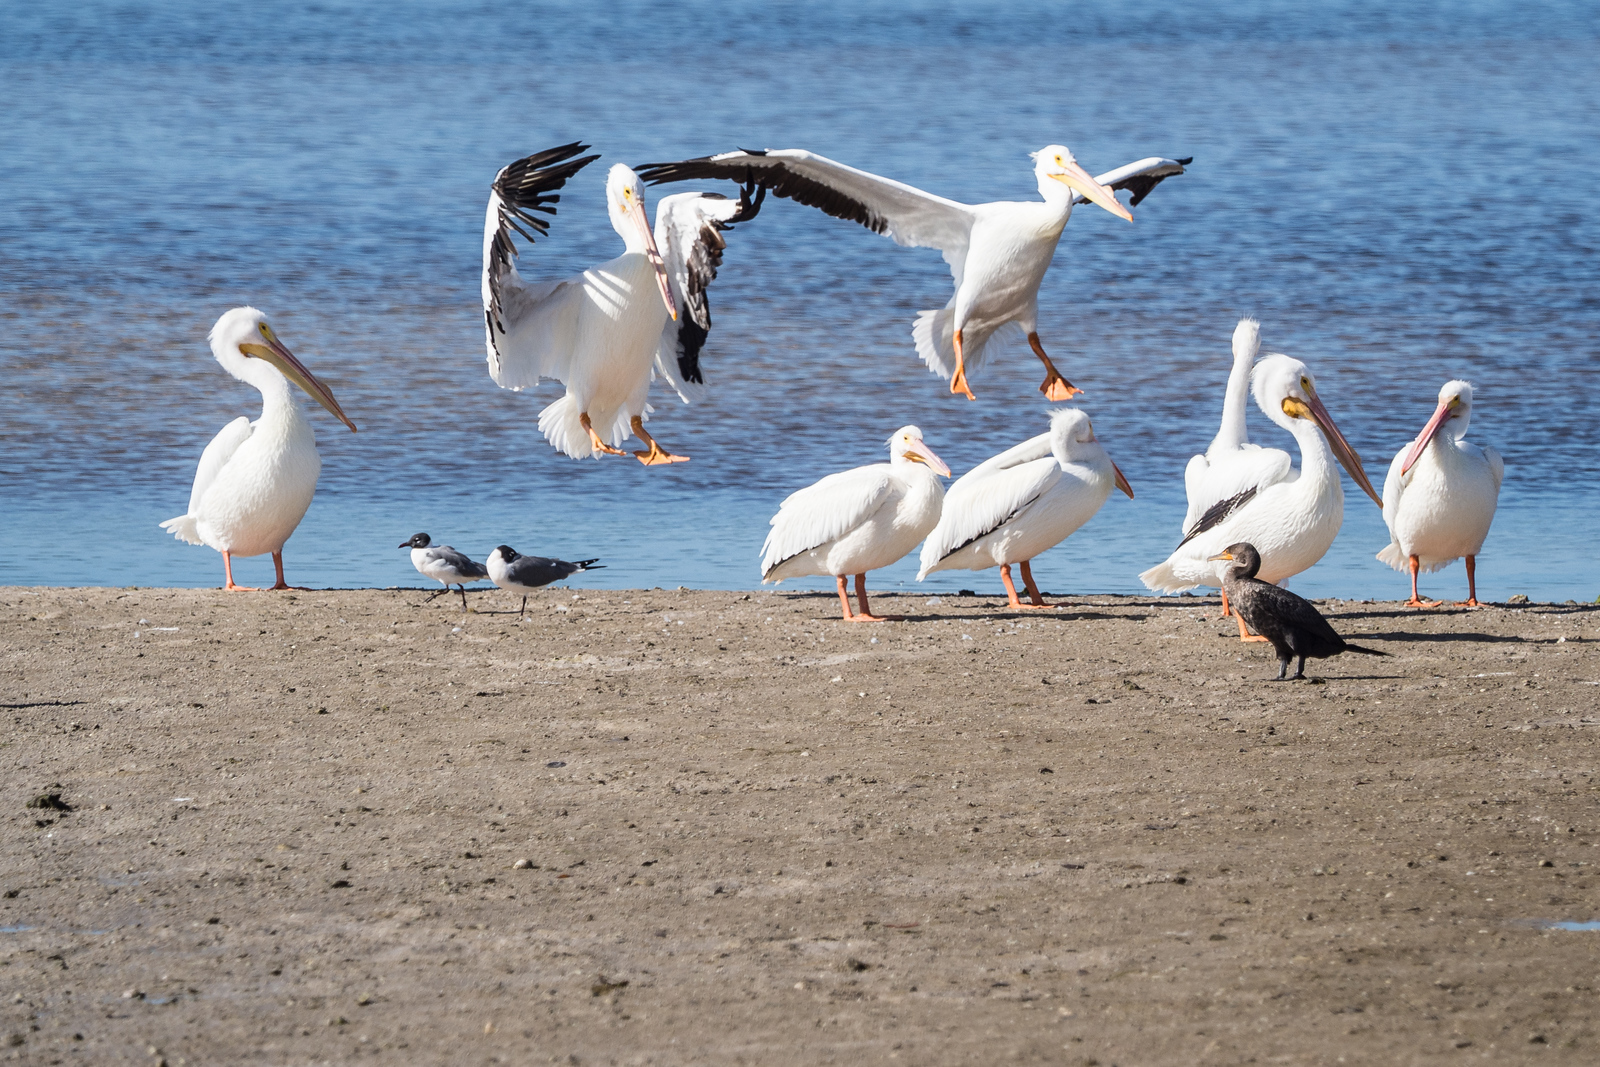 White Pelicans. Ding Darling Wildlife Refuge, Sanibel Island, FL